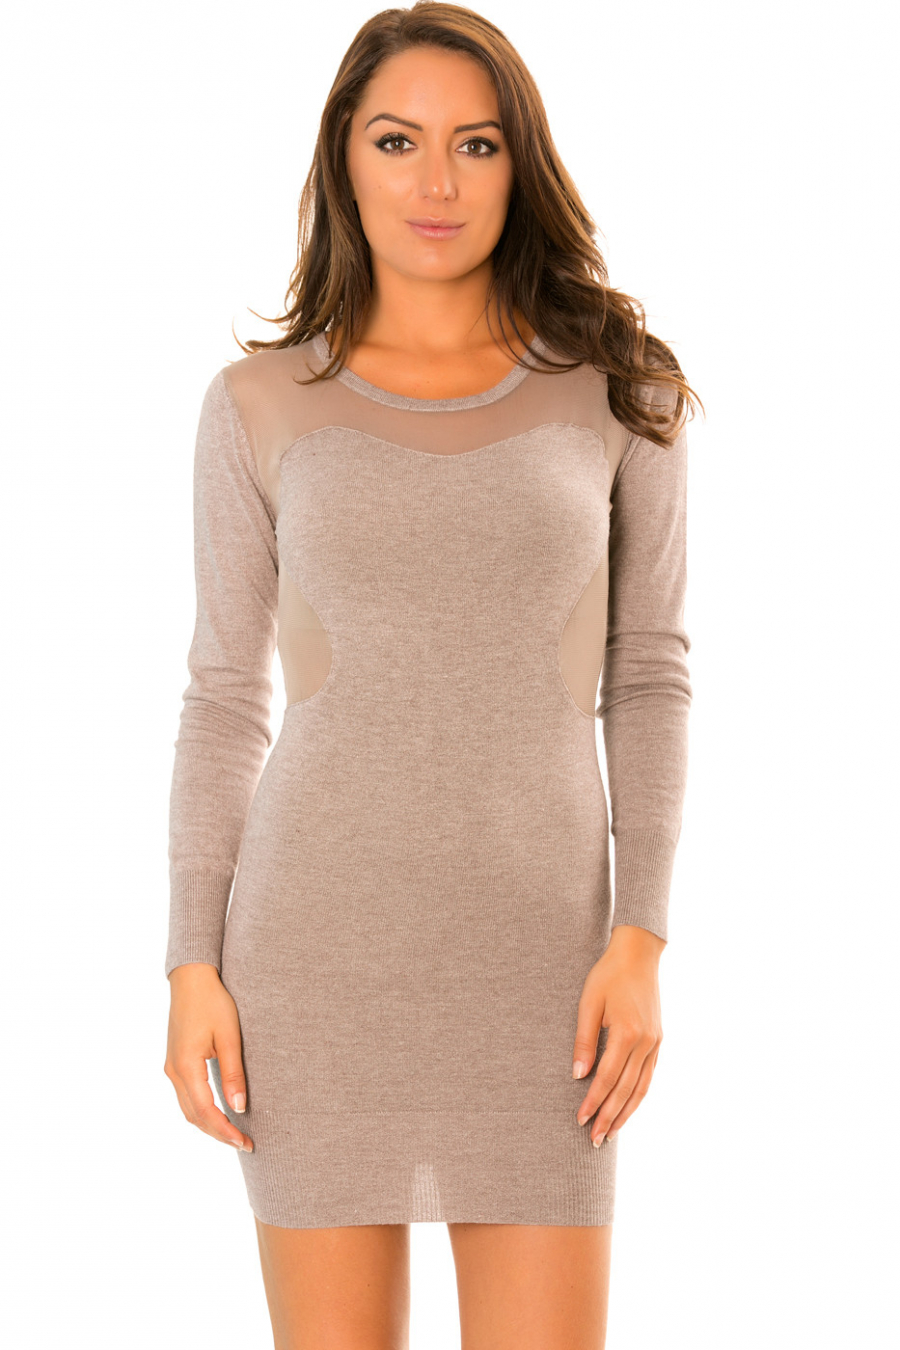 Taupe sweater dress with tulle bust. PU300-121